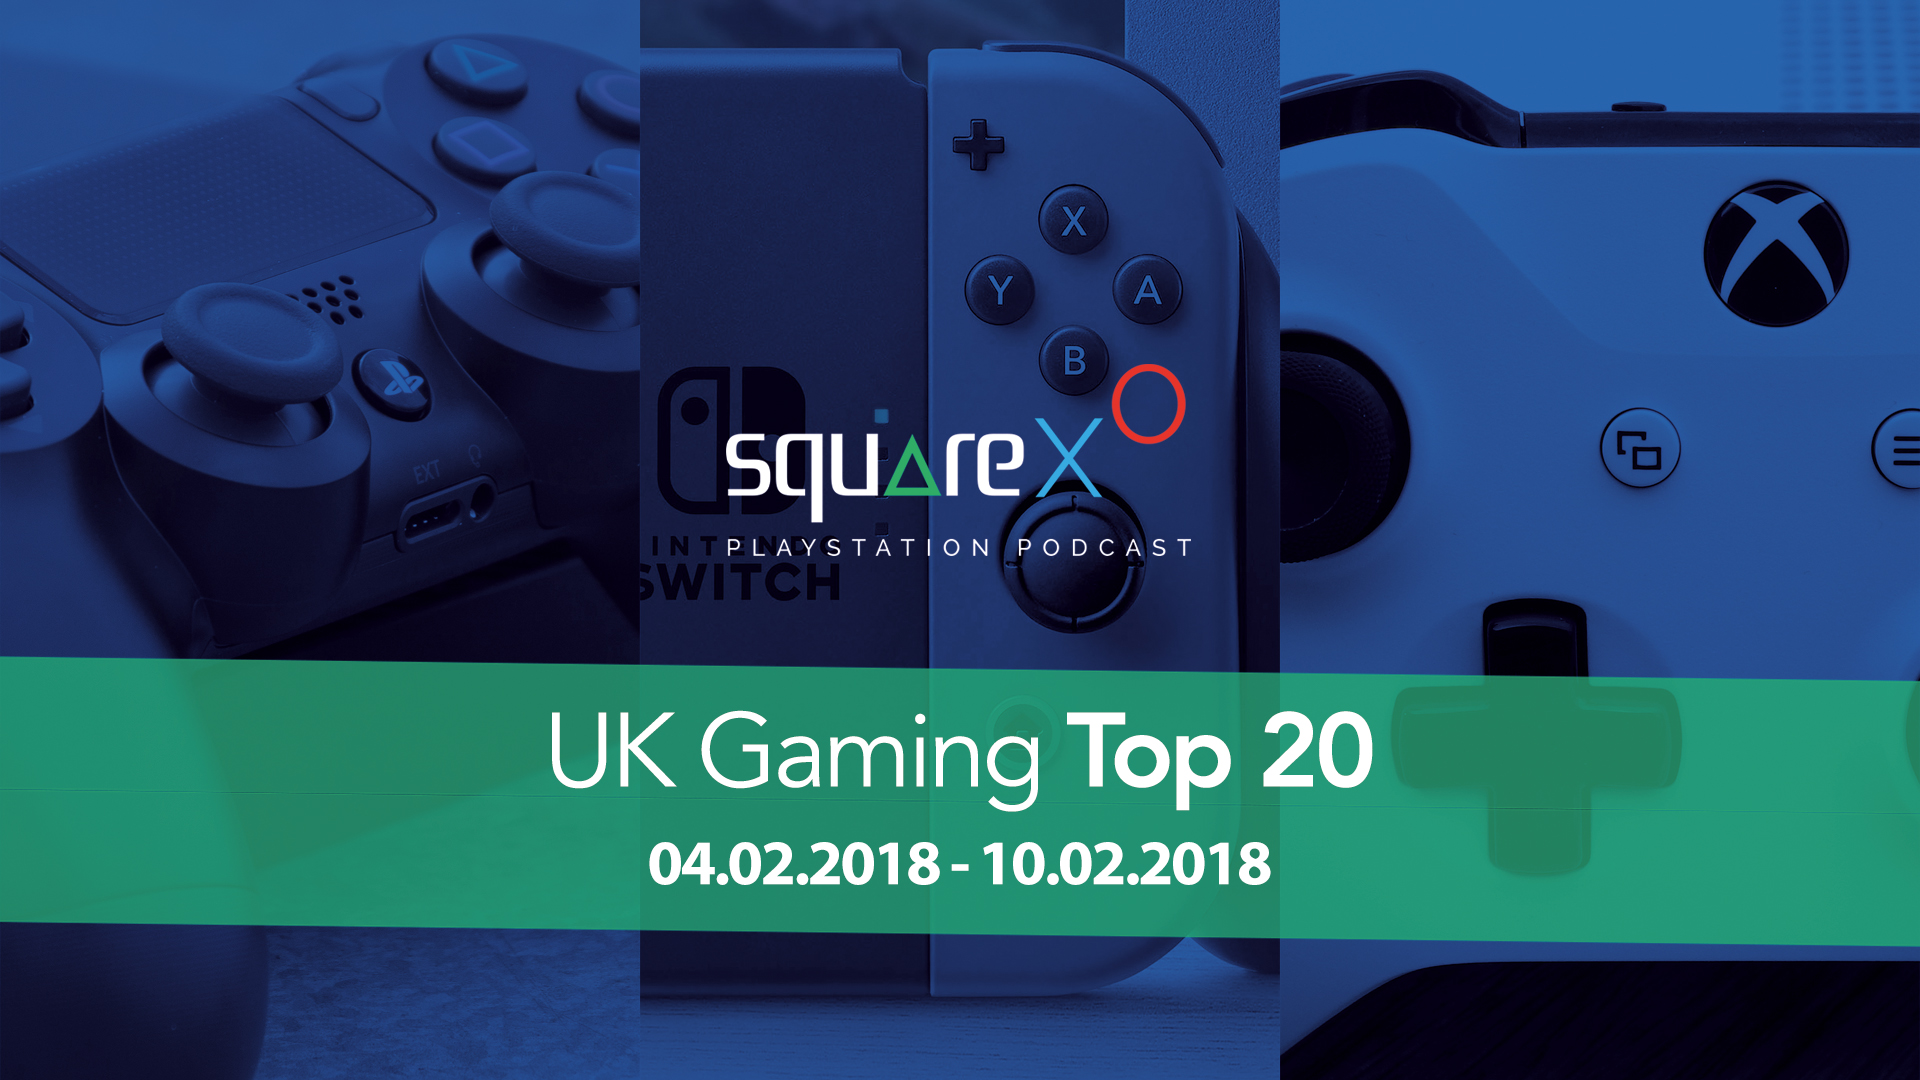 UK Weekly Top 20 Games for 04/02/18 – 10/02/18